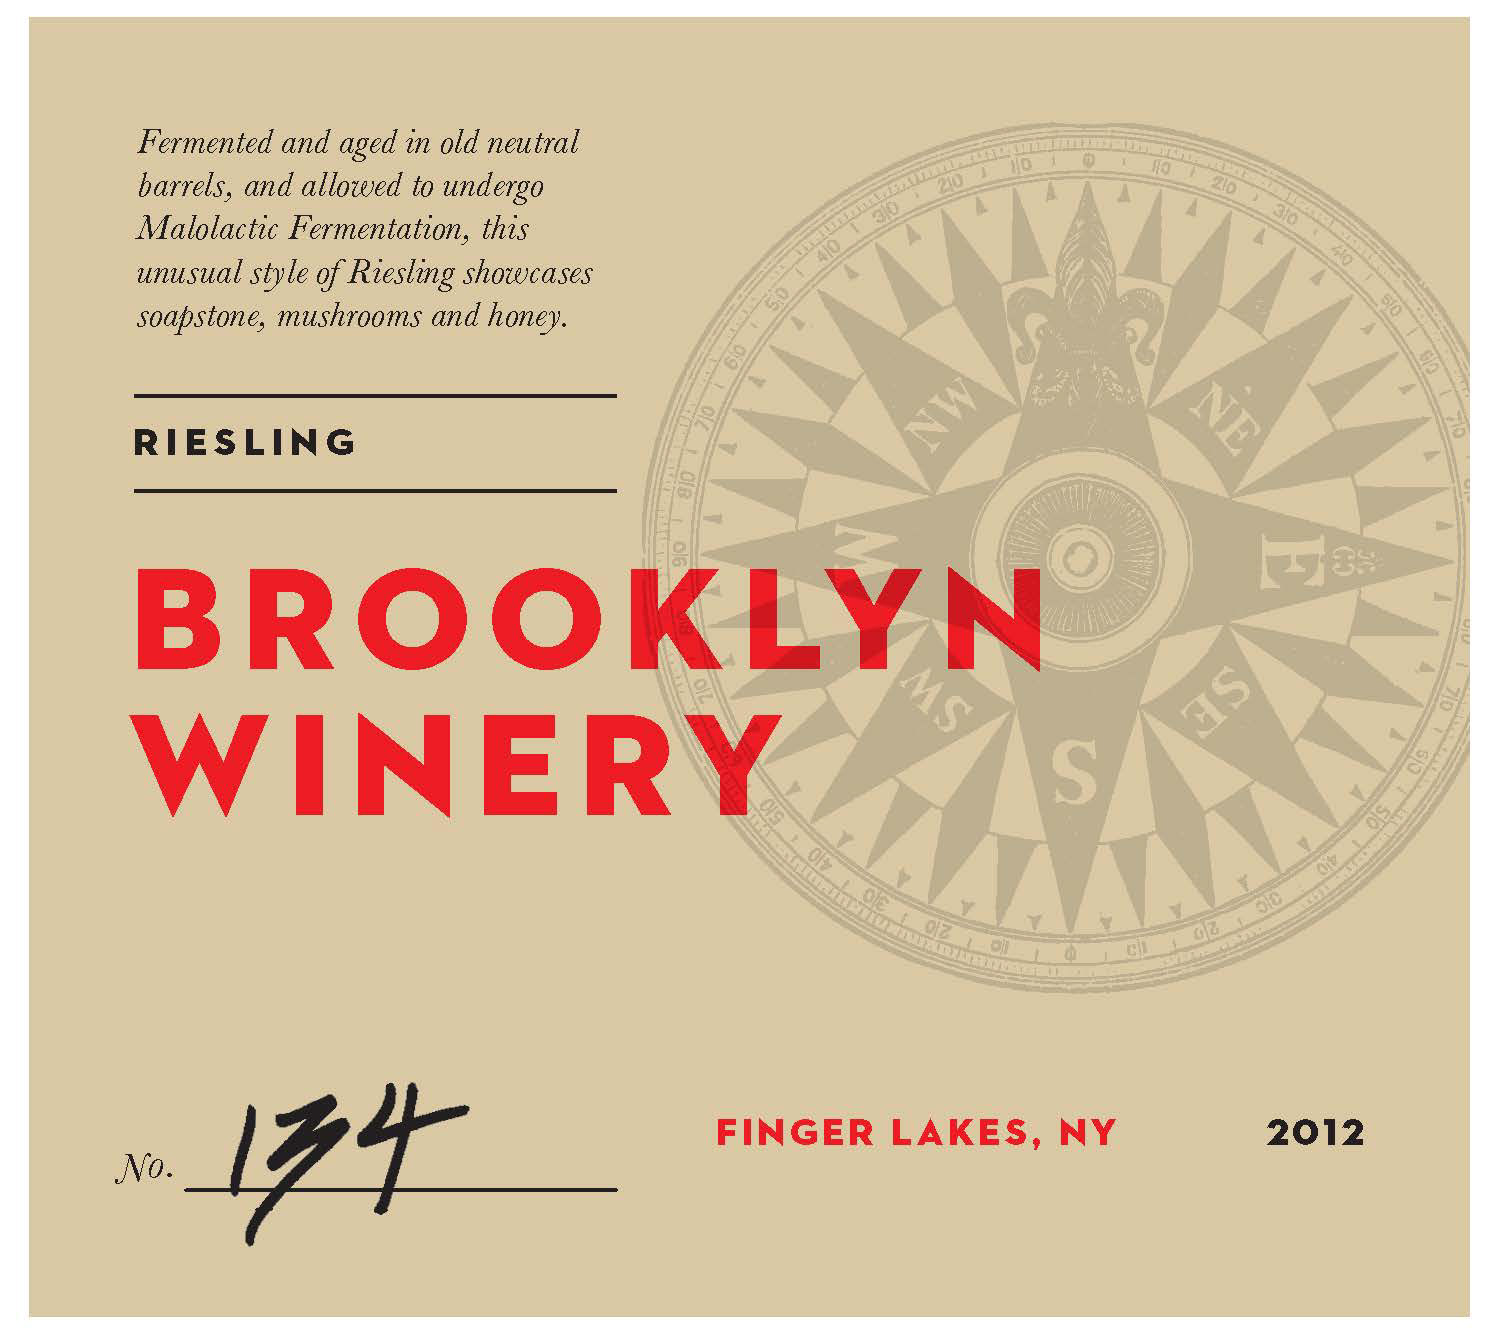 Jennifer rozbruch design brooklyn winery a variety of design pieces created for brooklyn winery a boutique urban winery in williamsburg designs include wine labels web banners menus reheart Images